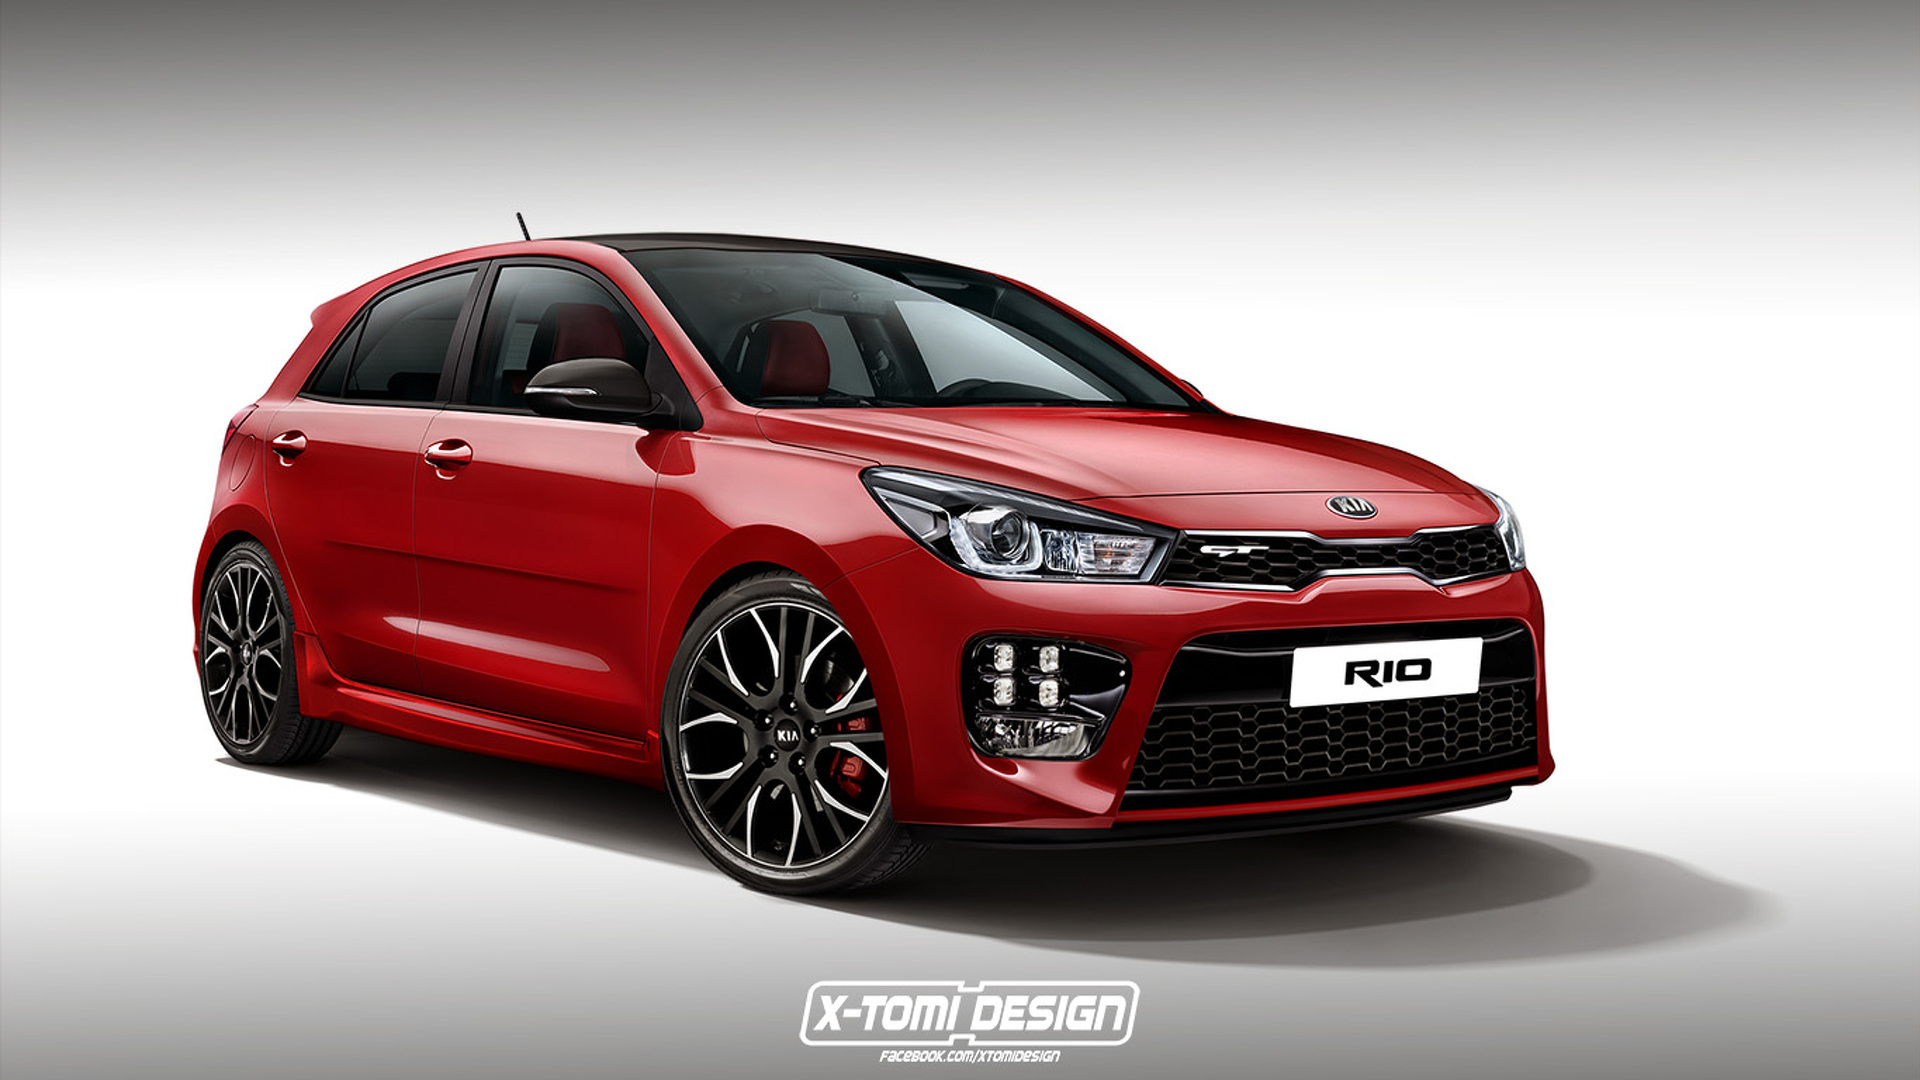 We Buy Used Cars >> 2017 Kia Rio rendered in spicy GT trim